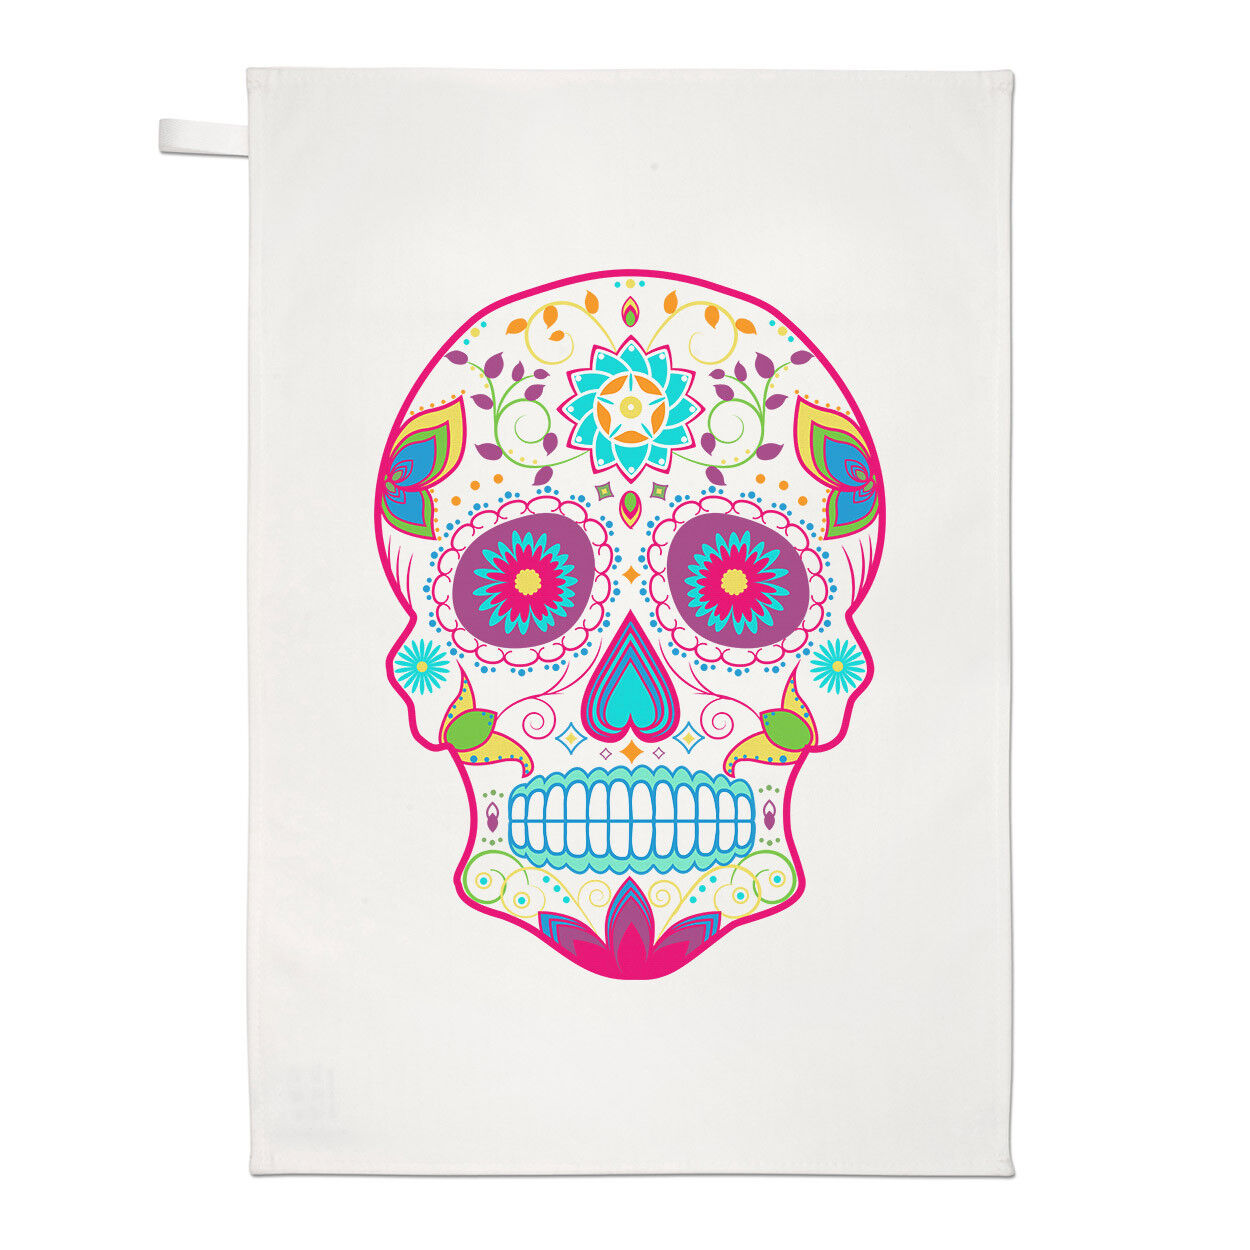 Colourful Sugar Skull Tea Towel Dish Cloth - Funny | eBay